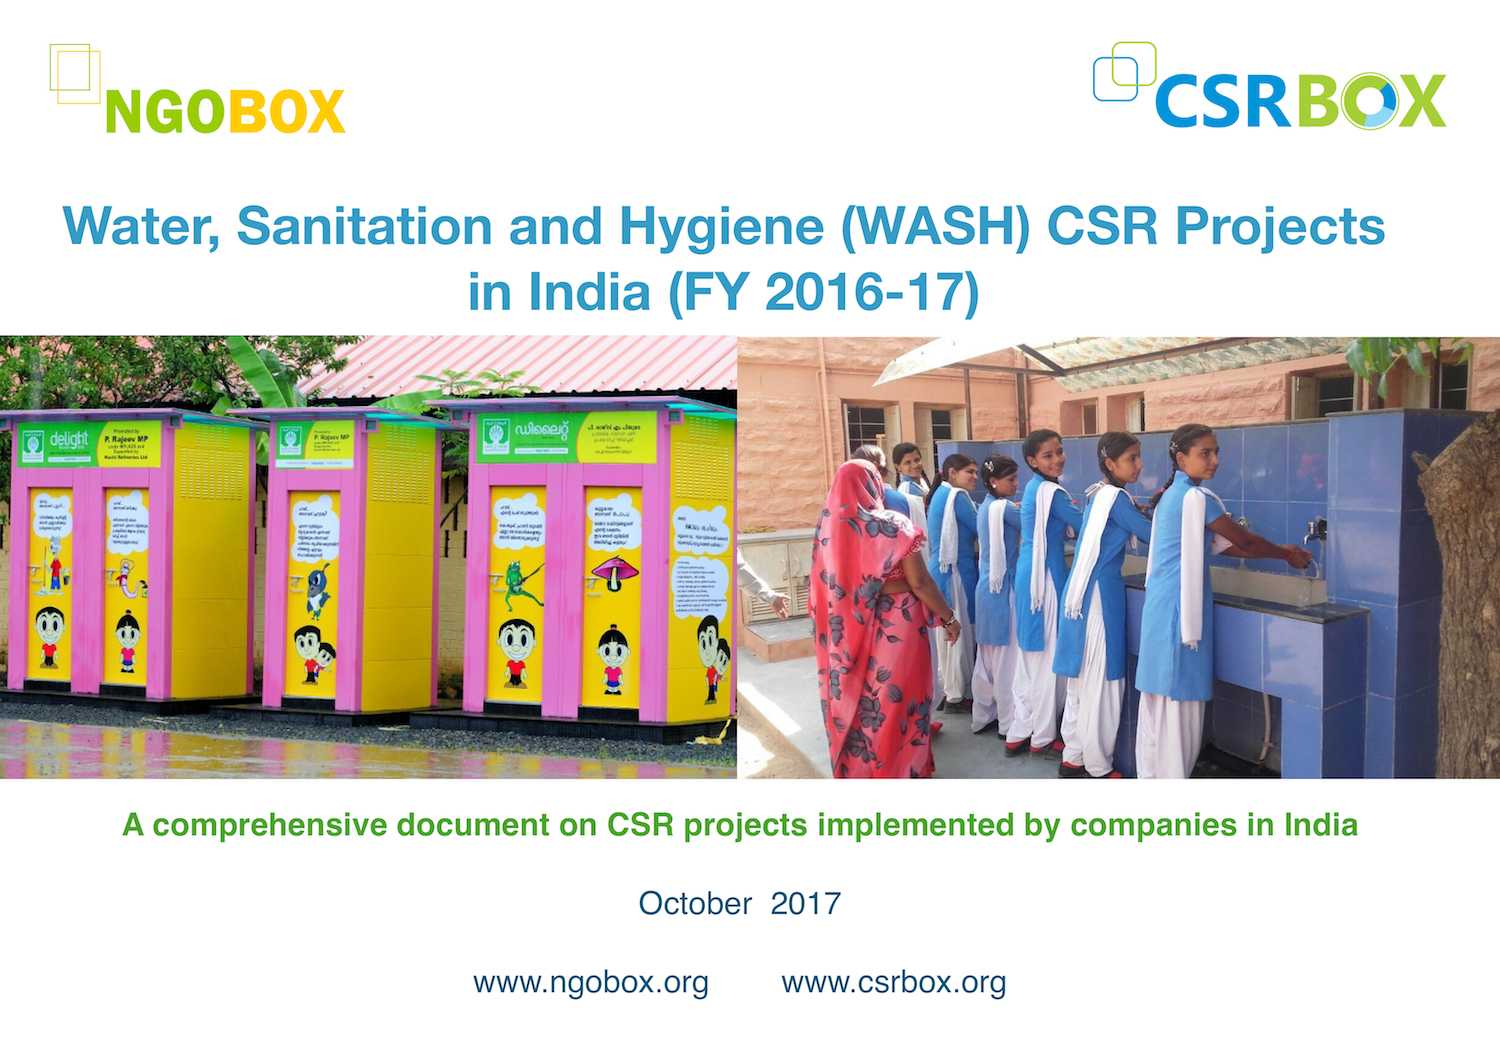 Water and Sanitation CSR Projects in India (FY 2016-17)